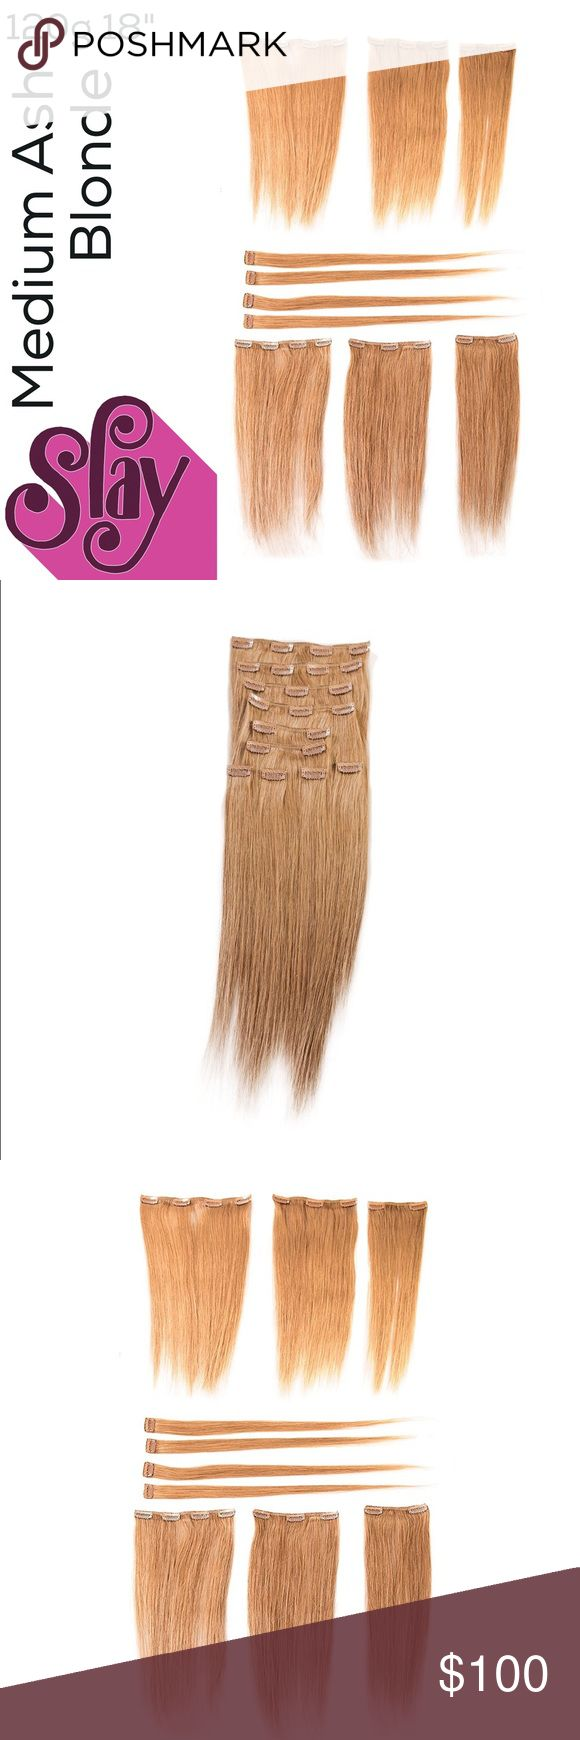 """Flash sale! Medium Ash Blonde human extensions 18"""" 120g, Set contains 10 pieces (in widths): One 9"""" piece, two 6"""" pieces, one 7"""" piece, two 4"""" pieces, and four 1.5"""" pieces and a sample strand for dye test. Human hair, heat safe, washable. Straight style, still in hairnet bag. Can be dyed with semi-permanent dye. Offers only through offer button. Paying for a hysterectomy in my 20's  so be reasonable, please. sono Other"""